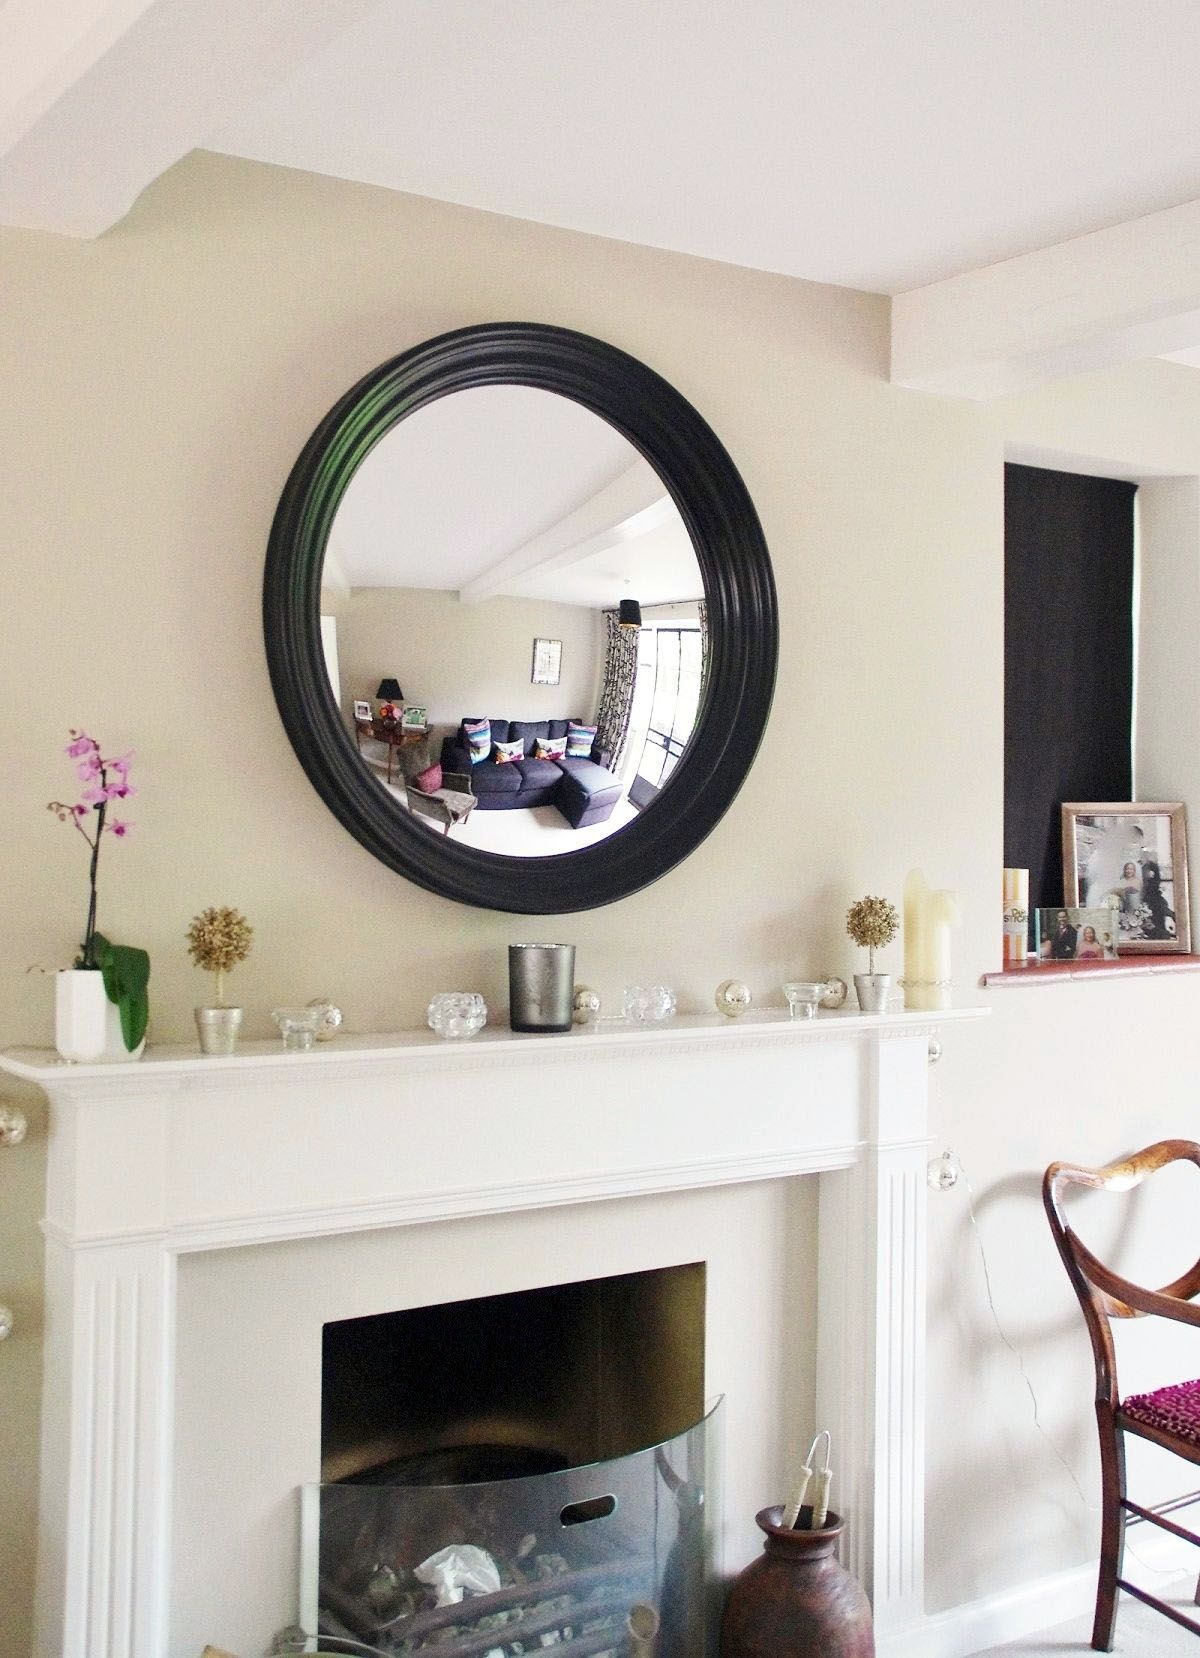 Tips For Adorning Along With Mirrors With Images Fireplace Mirror Mirror Above Fireplace Convex Mirror